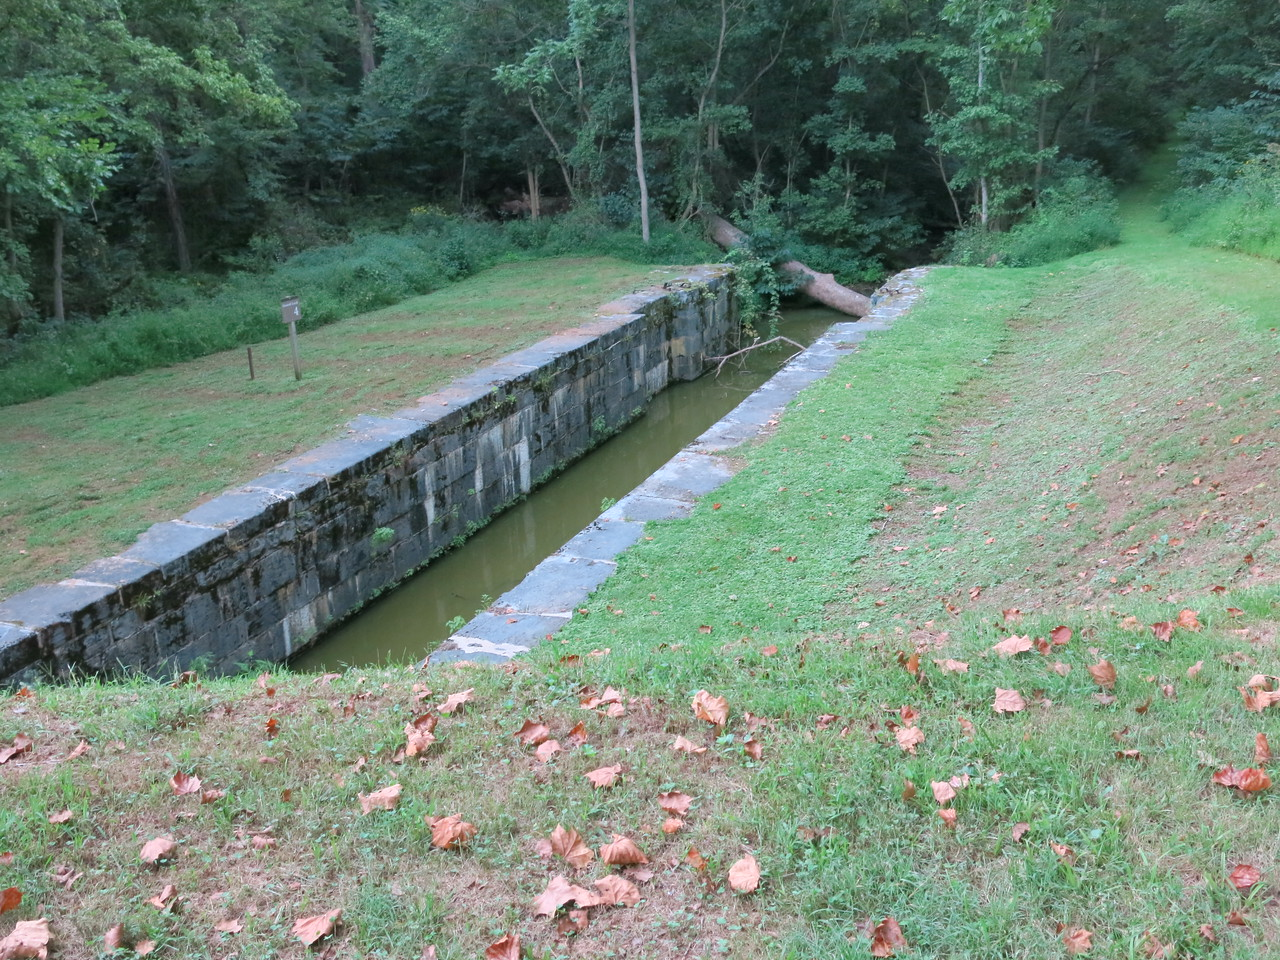 Guard Lock 4 (also called Inlet Lock 4)